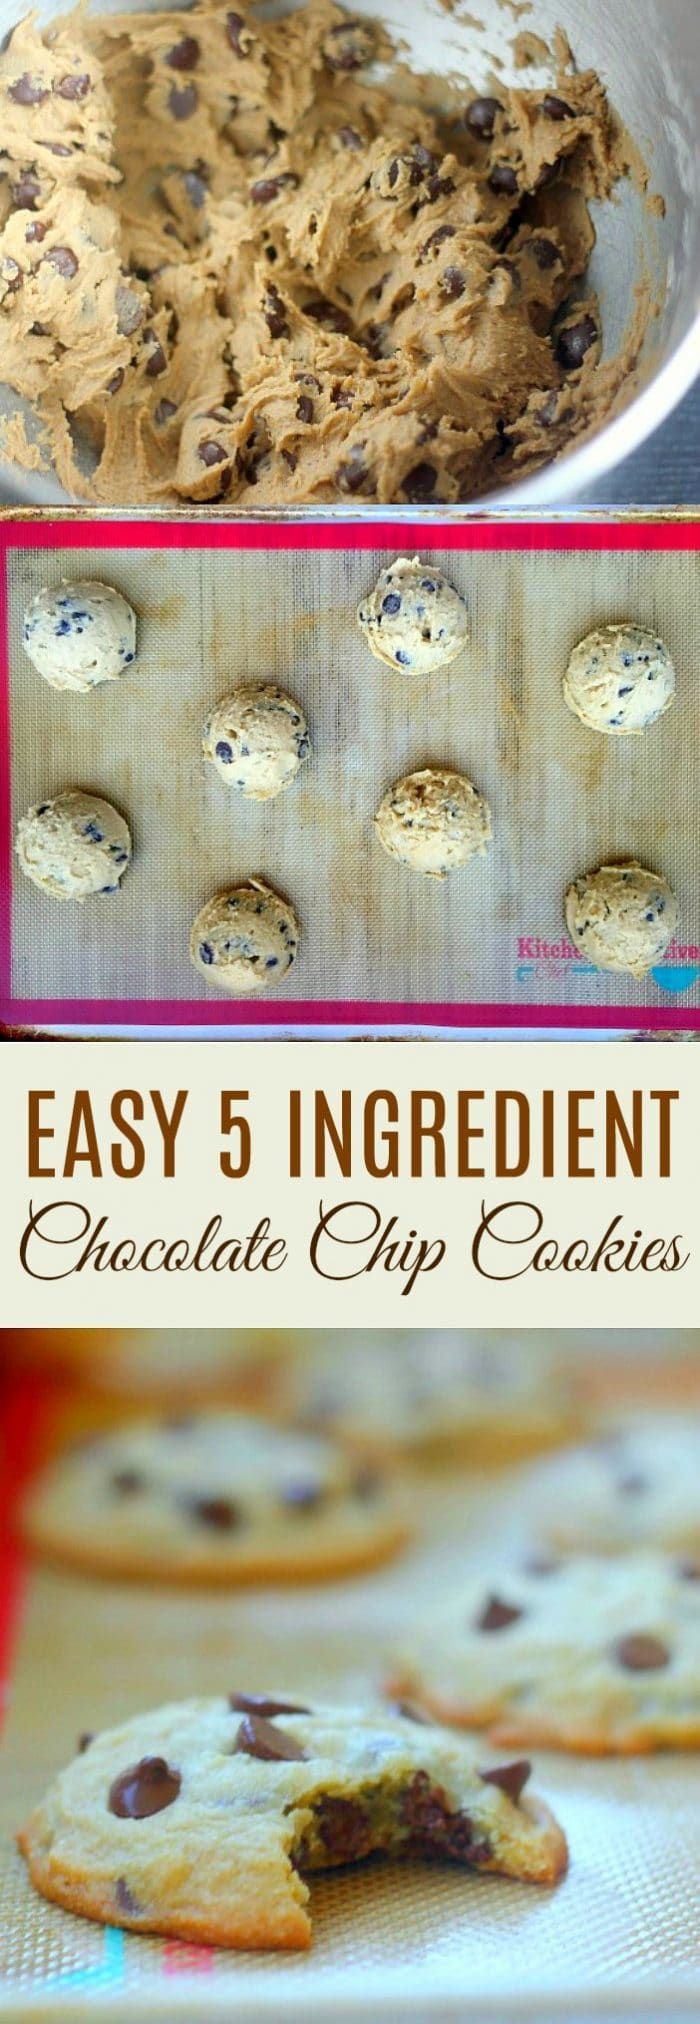 Easy Chocolate Chip Cookies images